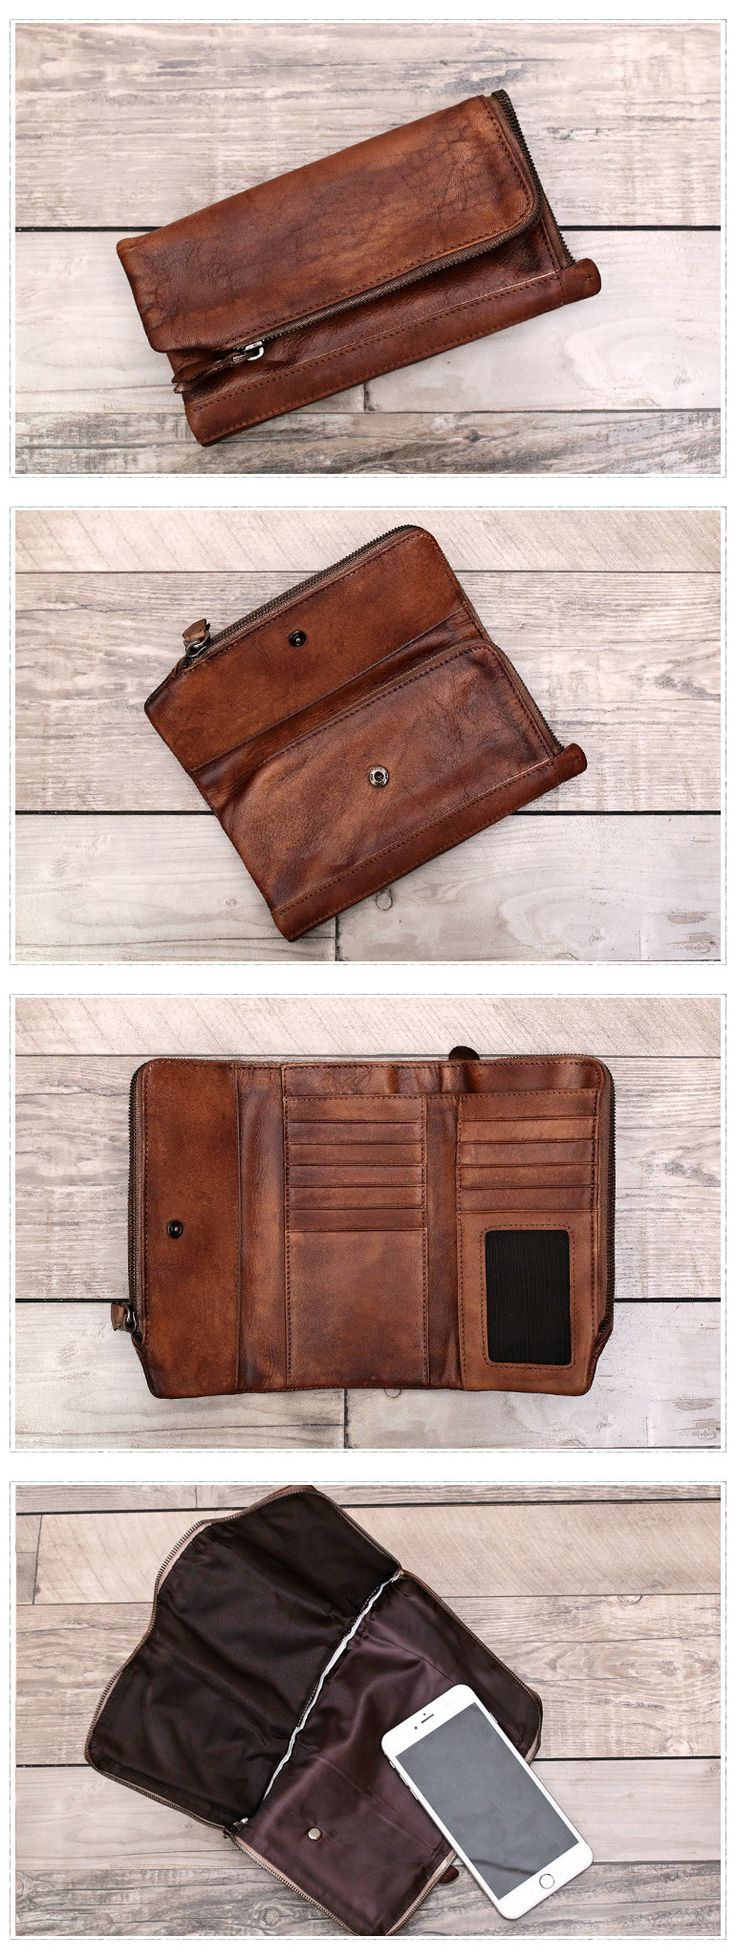 Full Grain Leather Wallet Phone Wallet Long Purse Dimensions: Length: 16.5cm; Height: 9cm Color: Brown